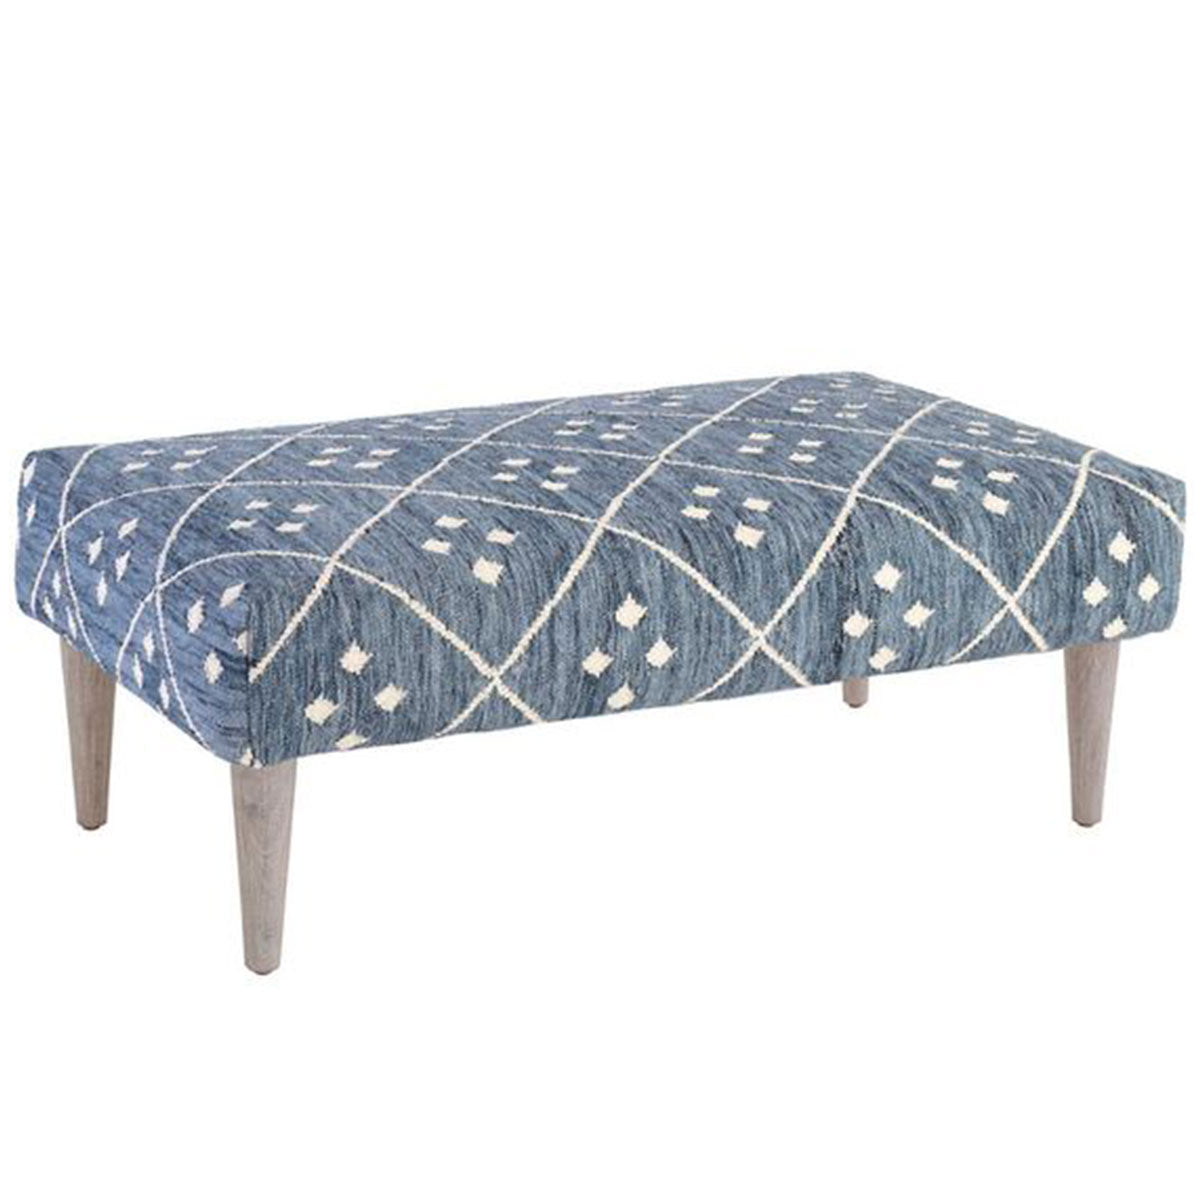 Malibu Farm Rug Ottoman with Cerused Leg - Indigo